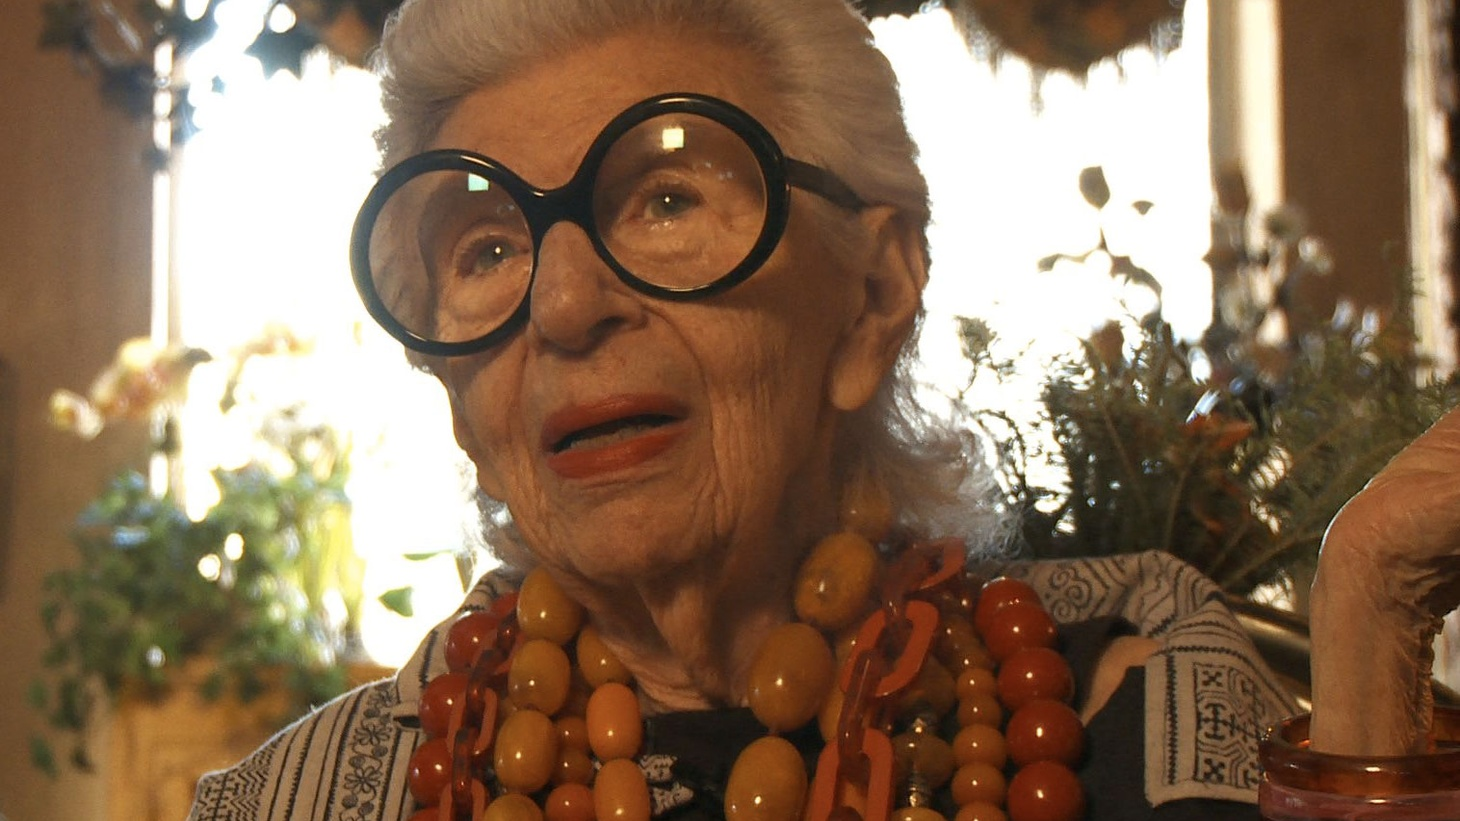 """The new documentary Iris paints a portrait of 93-year-old fashion maven Iris Apfel. It's a film about an icon, made by another icon, Albert Maysles. It's also one of his last films; Maysles died on March 5th at the age of 88. Albert and his brother David, who died in 1987, were documentary legends known for their """"fly on the wall"""" style."""